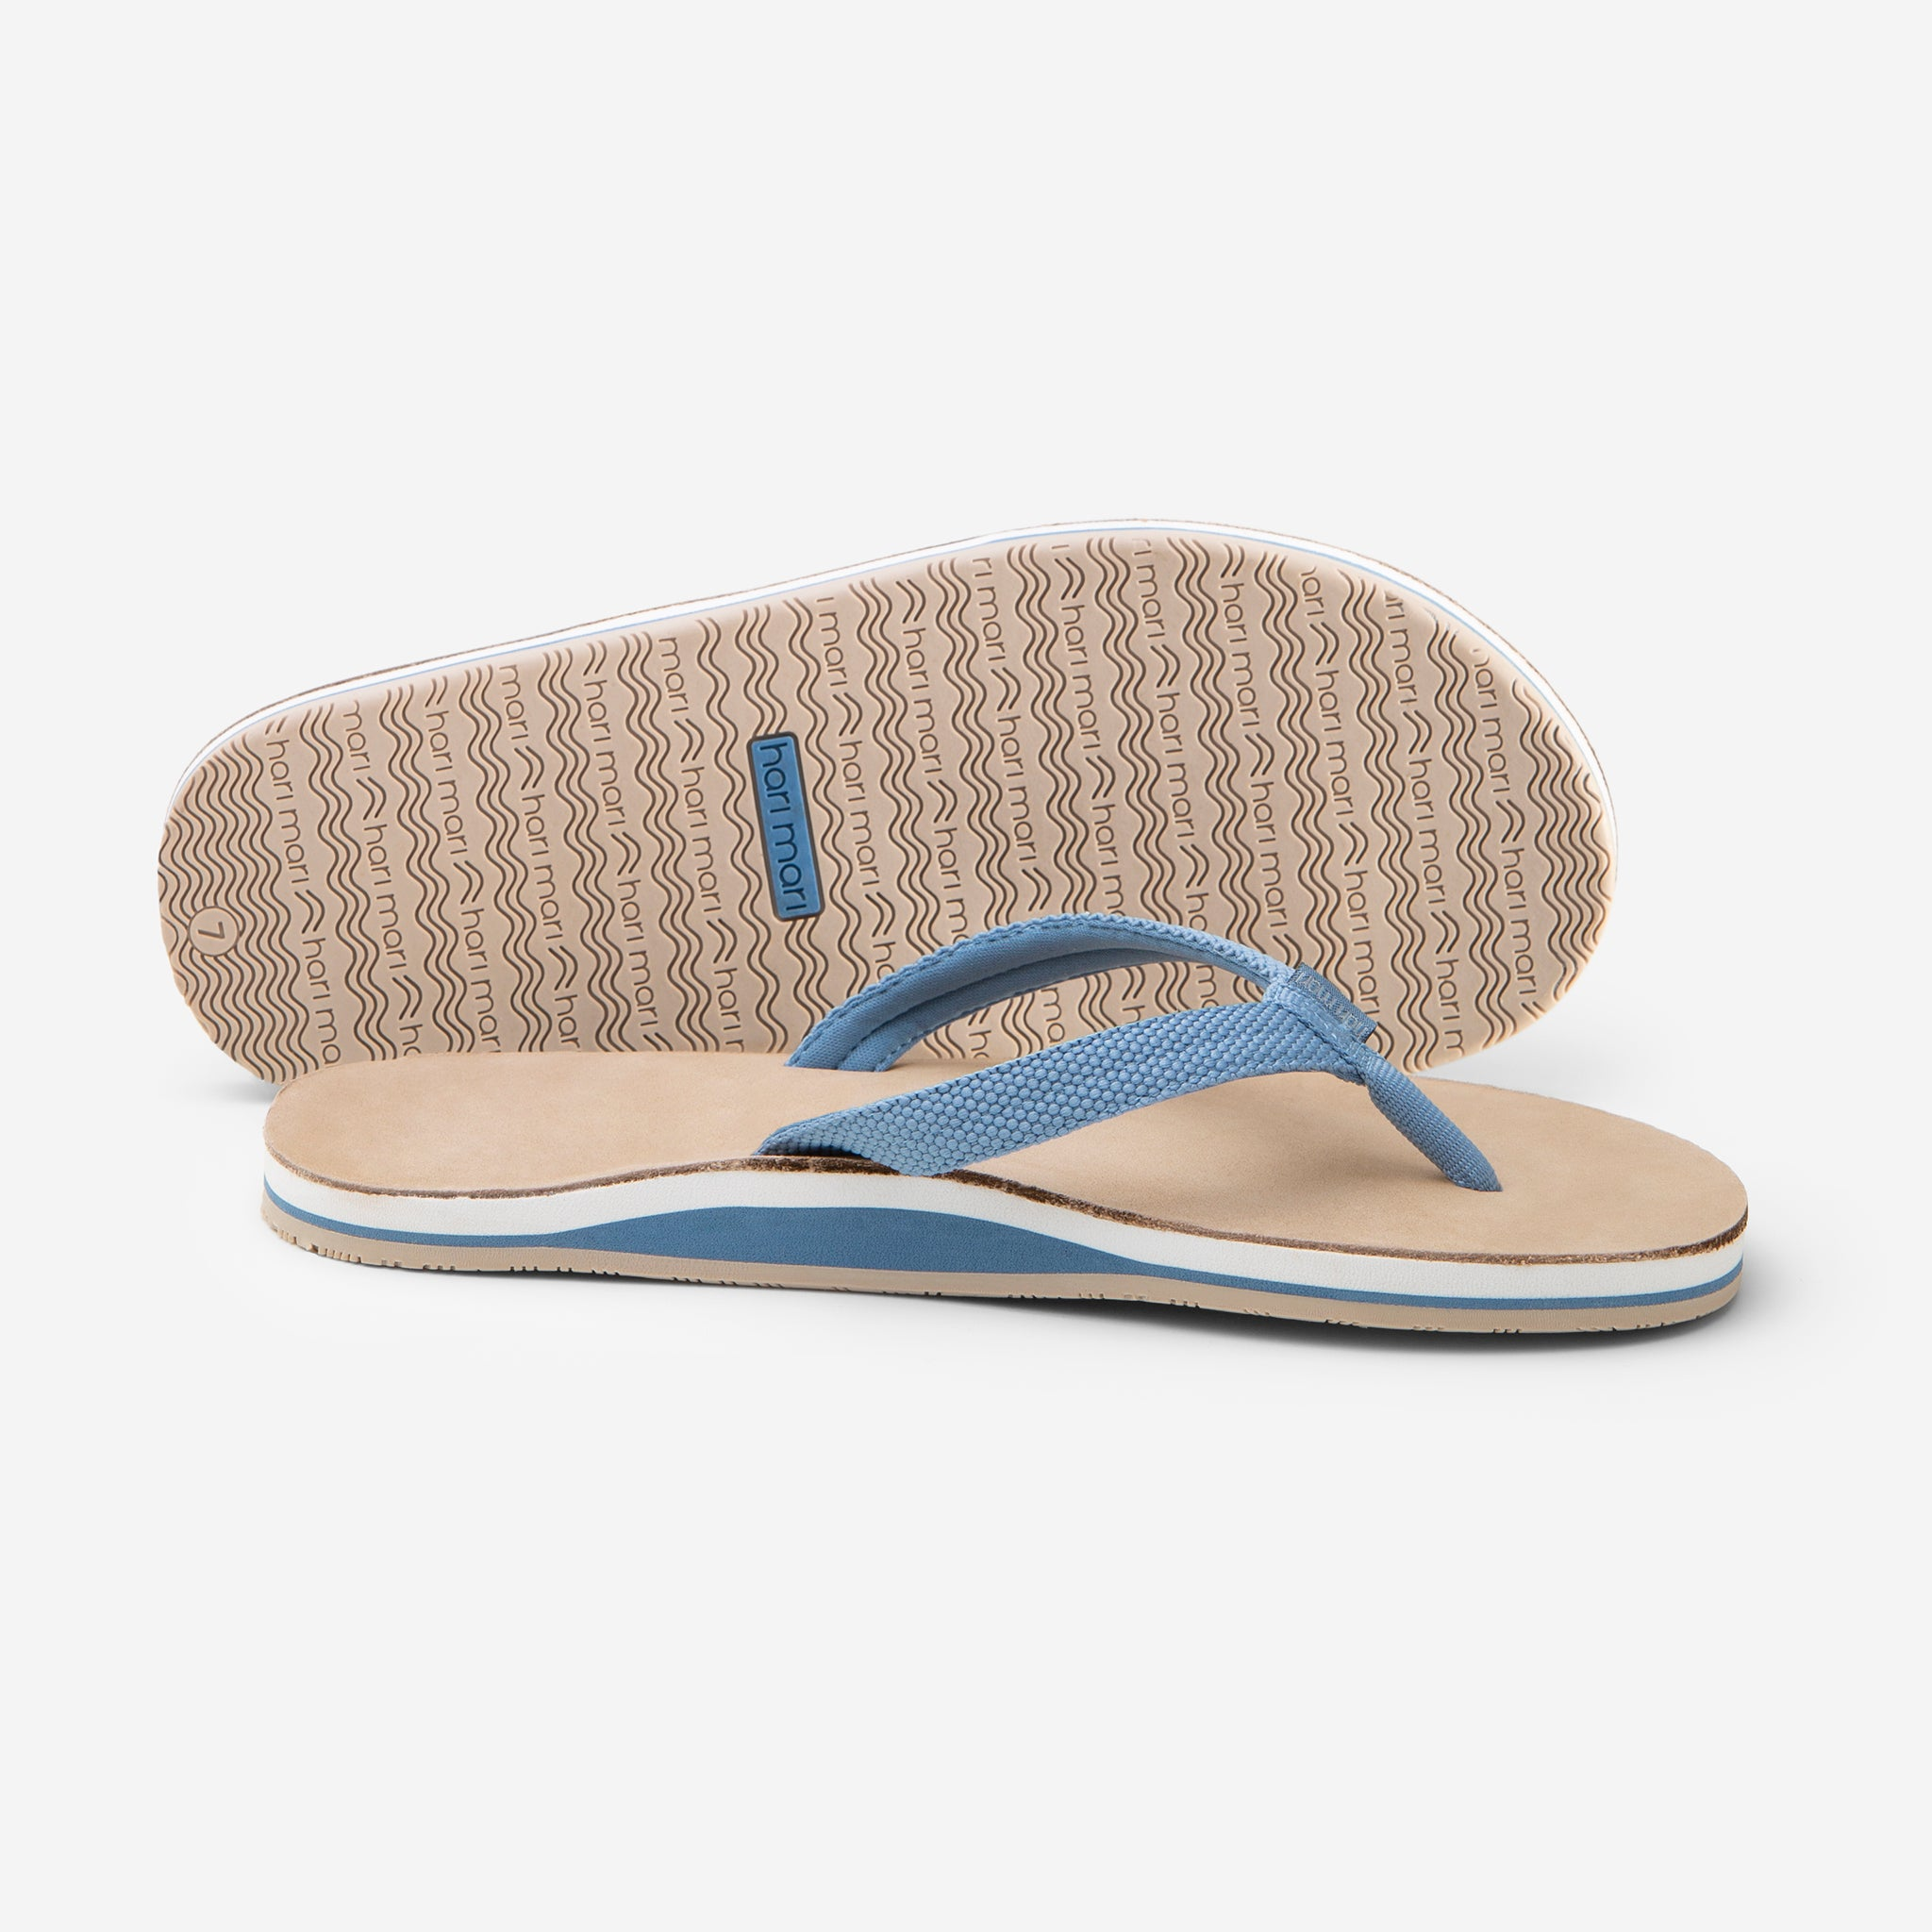 Hari Mari Women's Scouts in Dusty Blue/Sand picture showing flip flop and bottom of shoe rubber outsole on white background